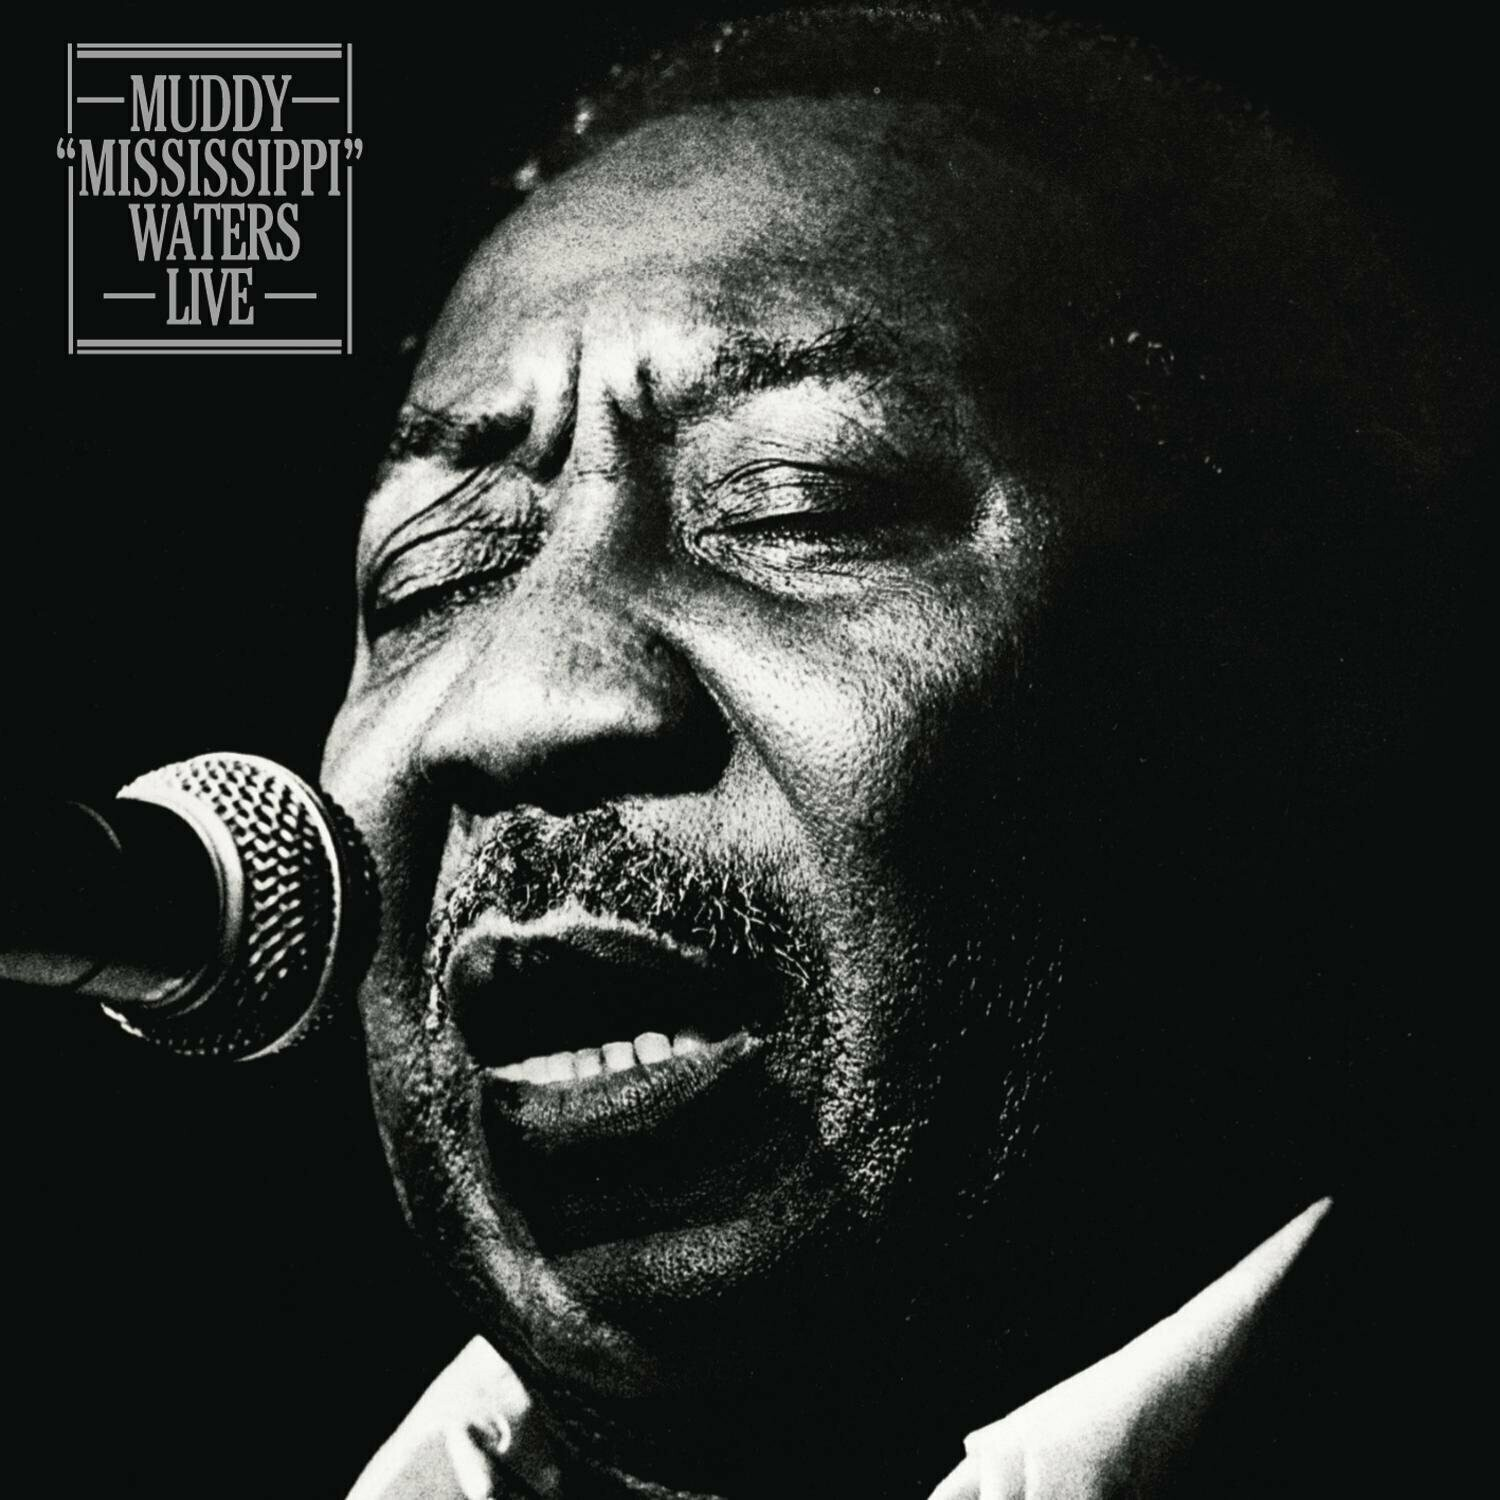 """Muddy Waters """"Muddy 'Mississippi' Waters Live"""" EX+ 1979"""